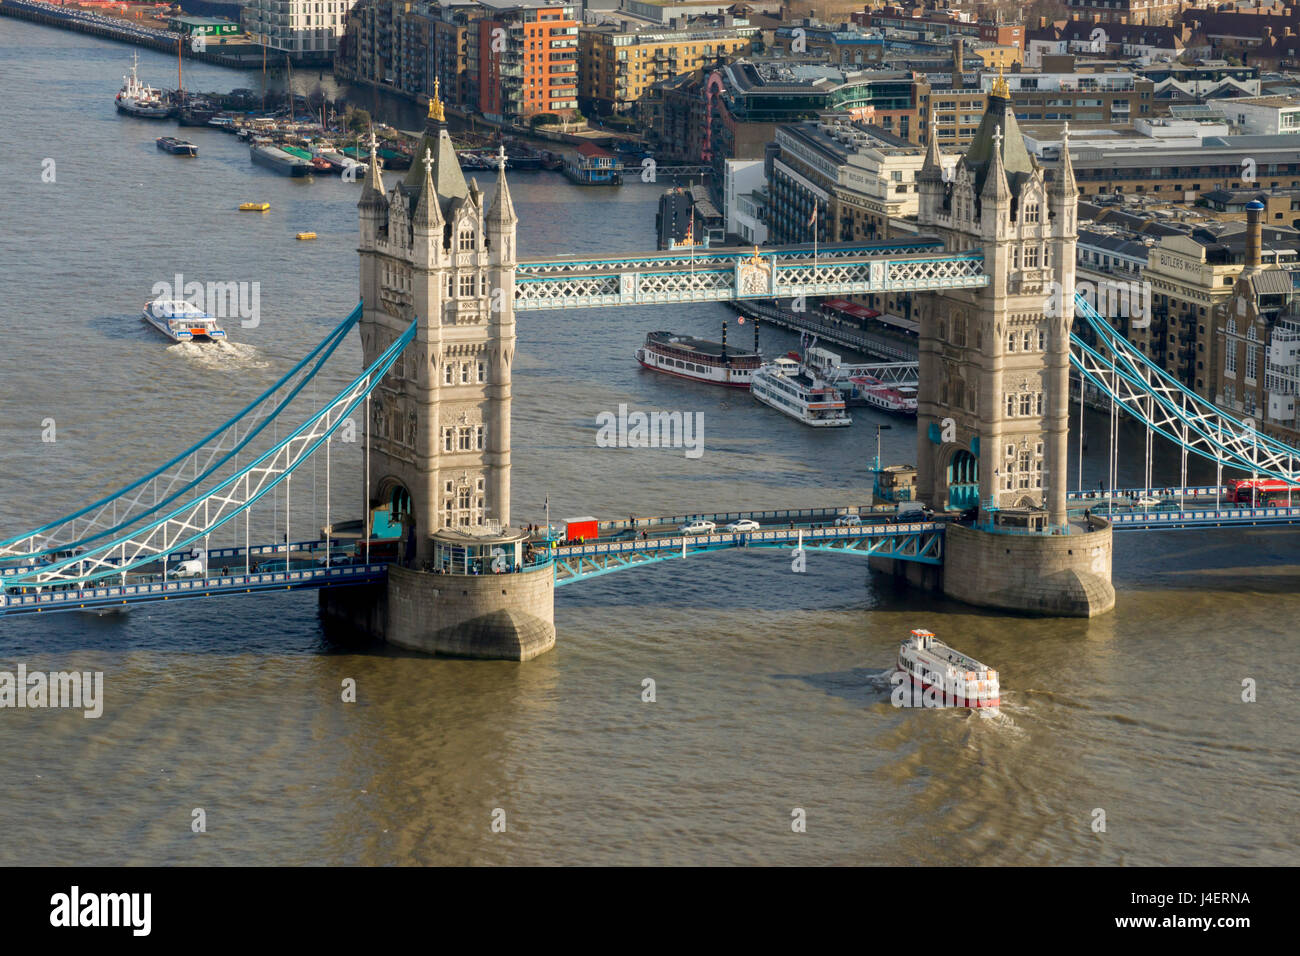 Aerial view of Tower Bridge and River Thames, London, England, United Kingdom, Europe - Stock Image